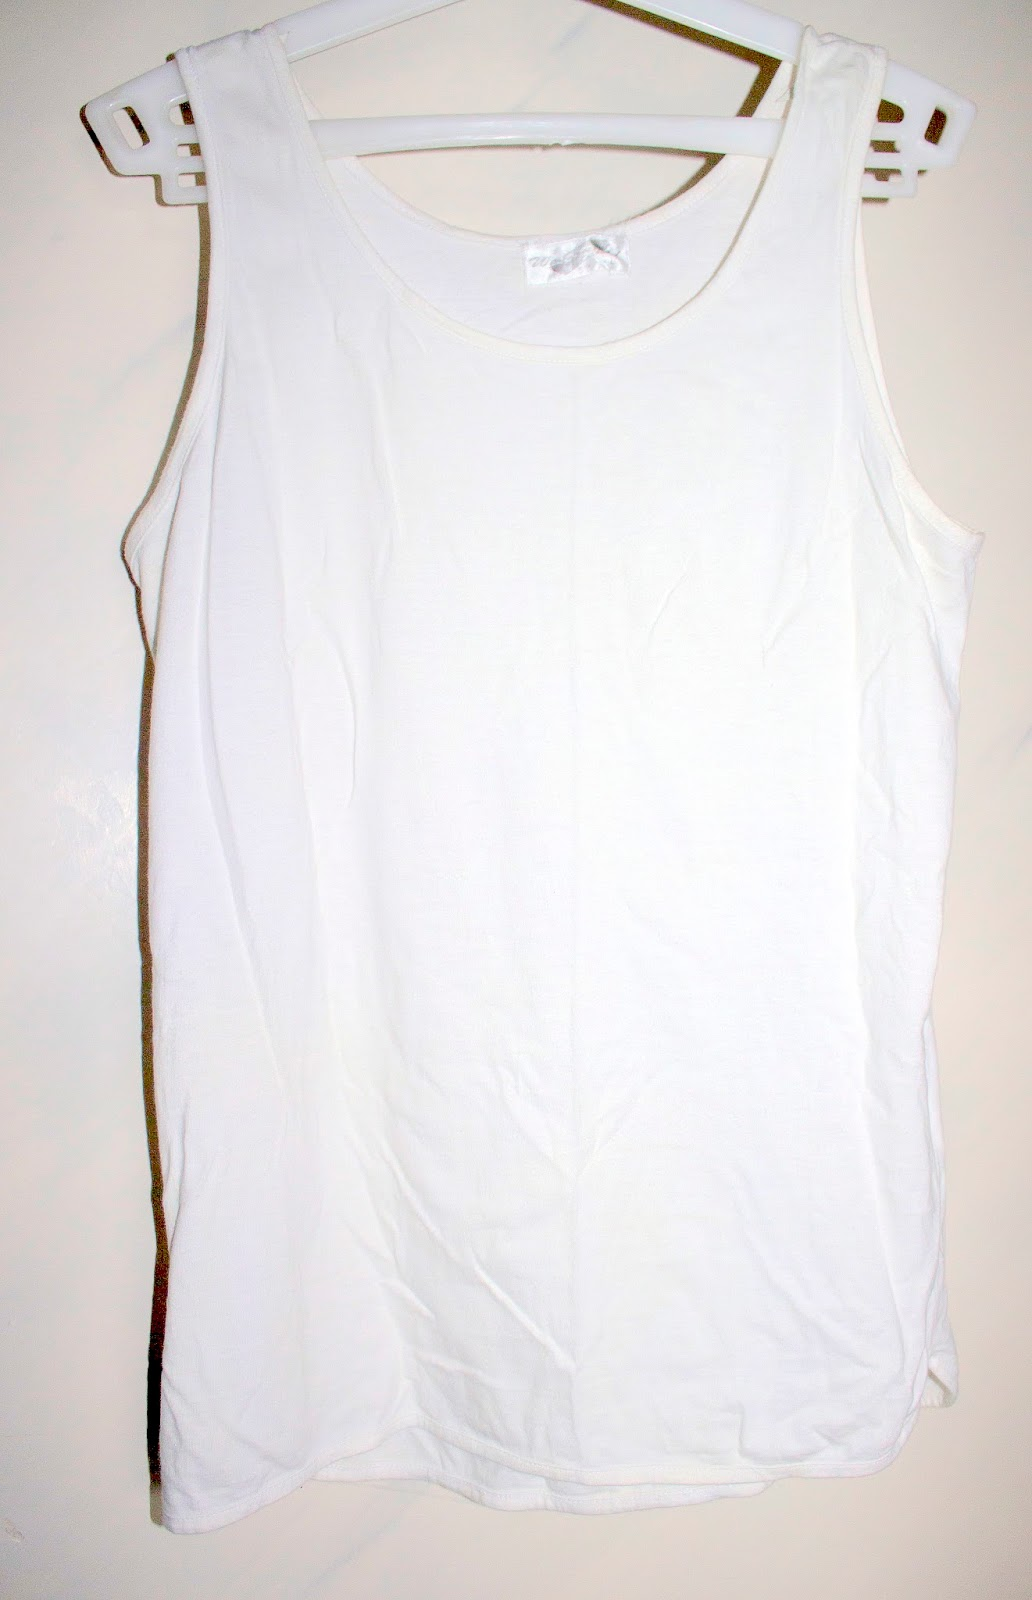 DIY THURSDAY -  WHITE TEE TO CROP TOP